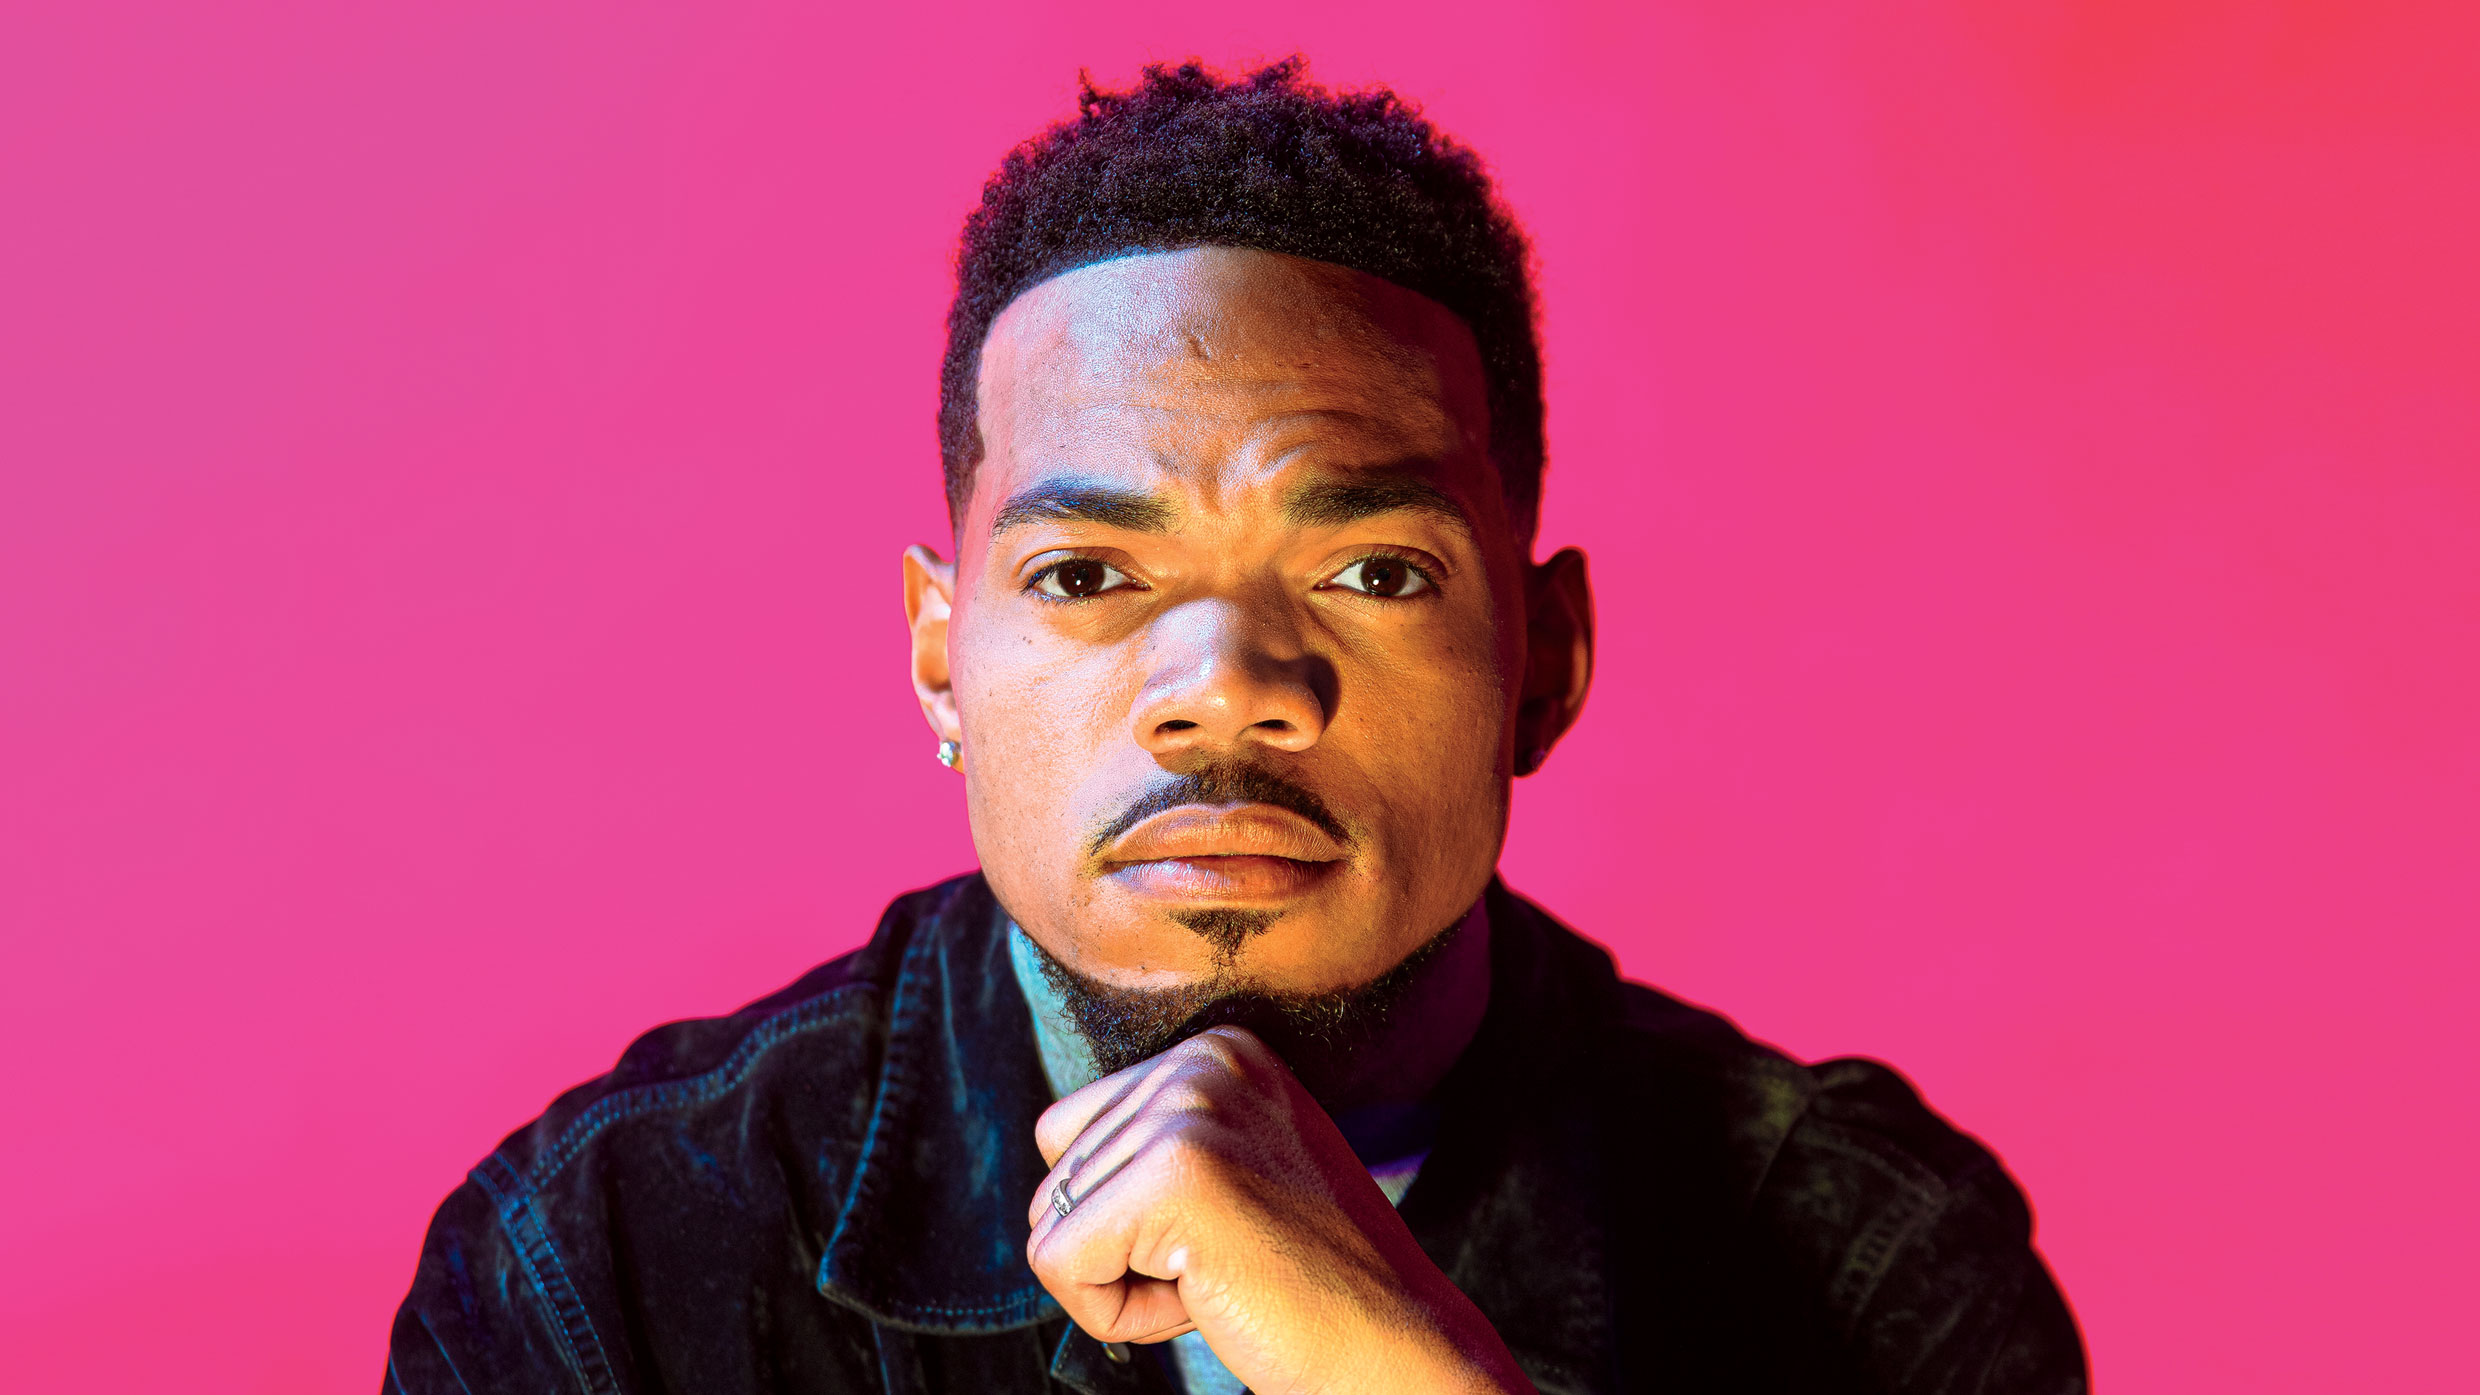 Chance The Rapper Has Cancelled All 2020 Tour Dates